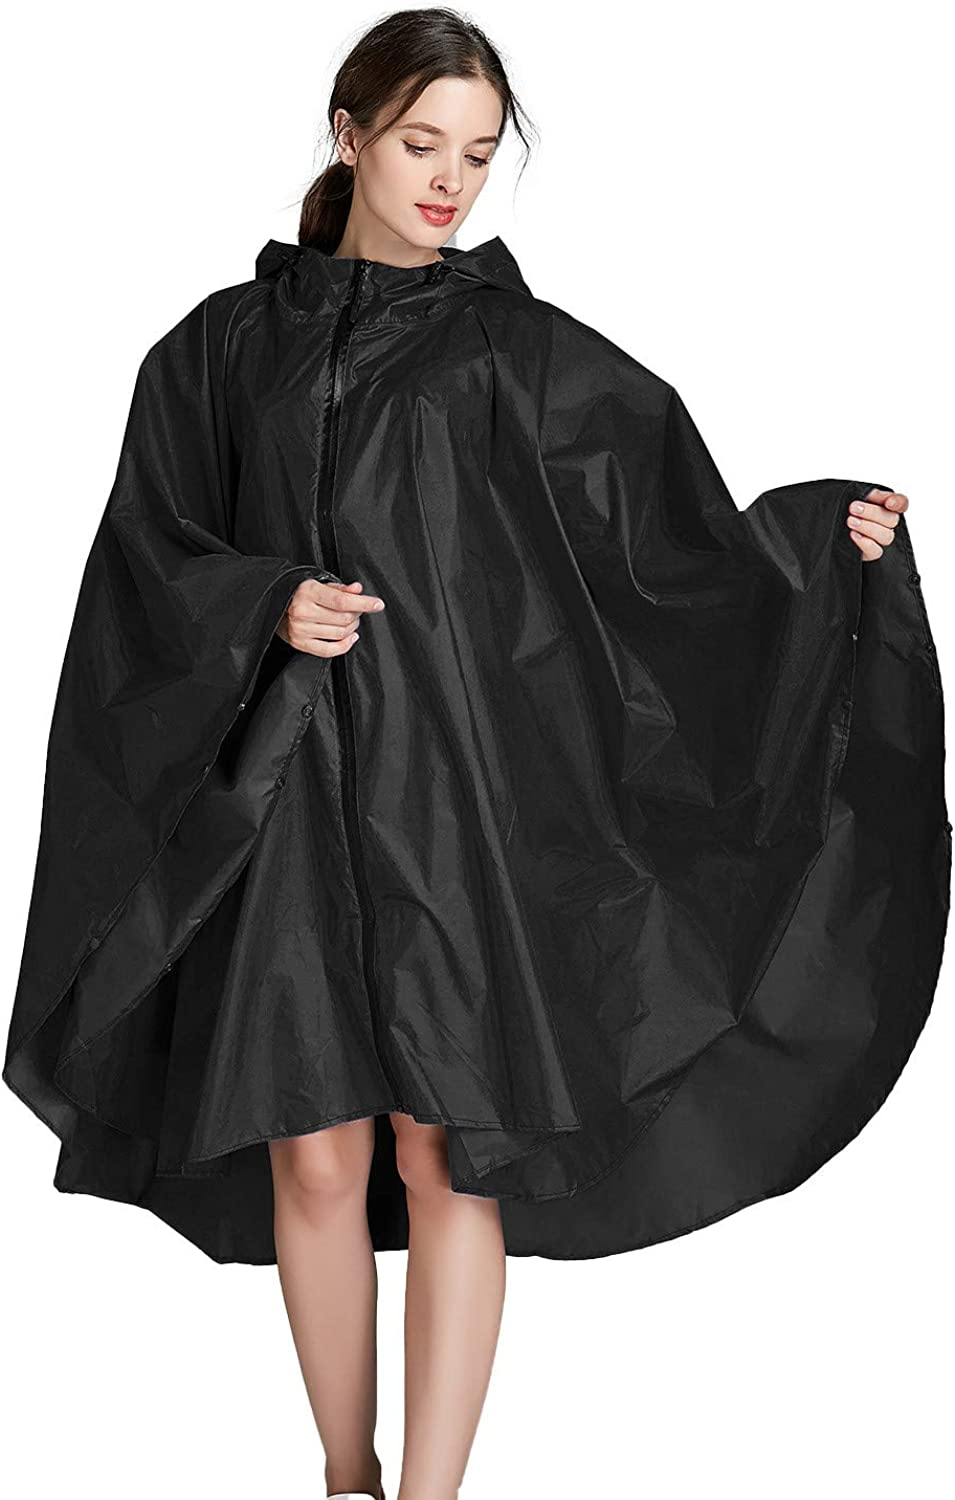 Poncho de Lluvia para Mujer con Capucha Impermeable Unisex con Cremallera al Aire Libre Impermeable chuangminghangqi